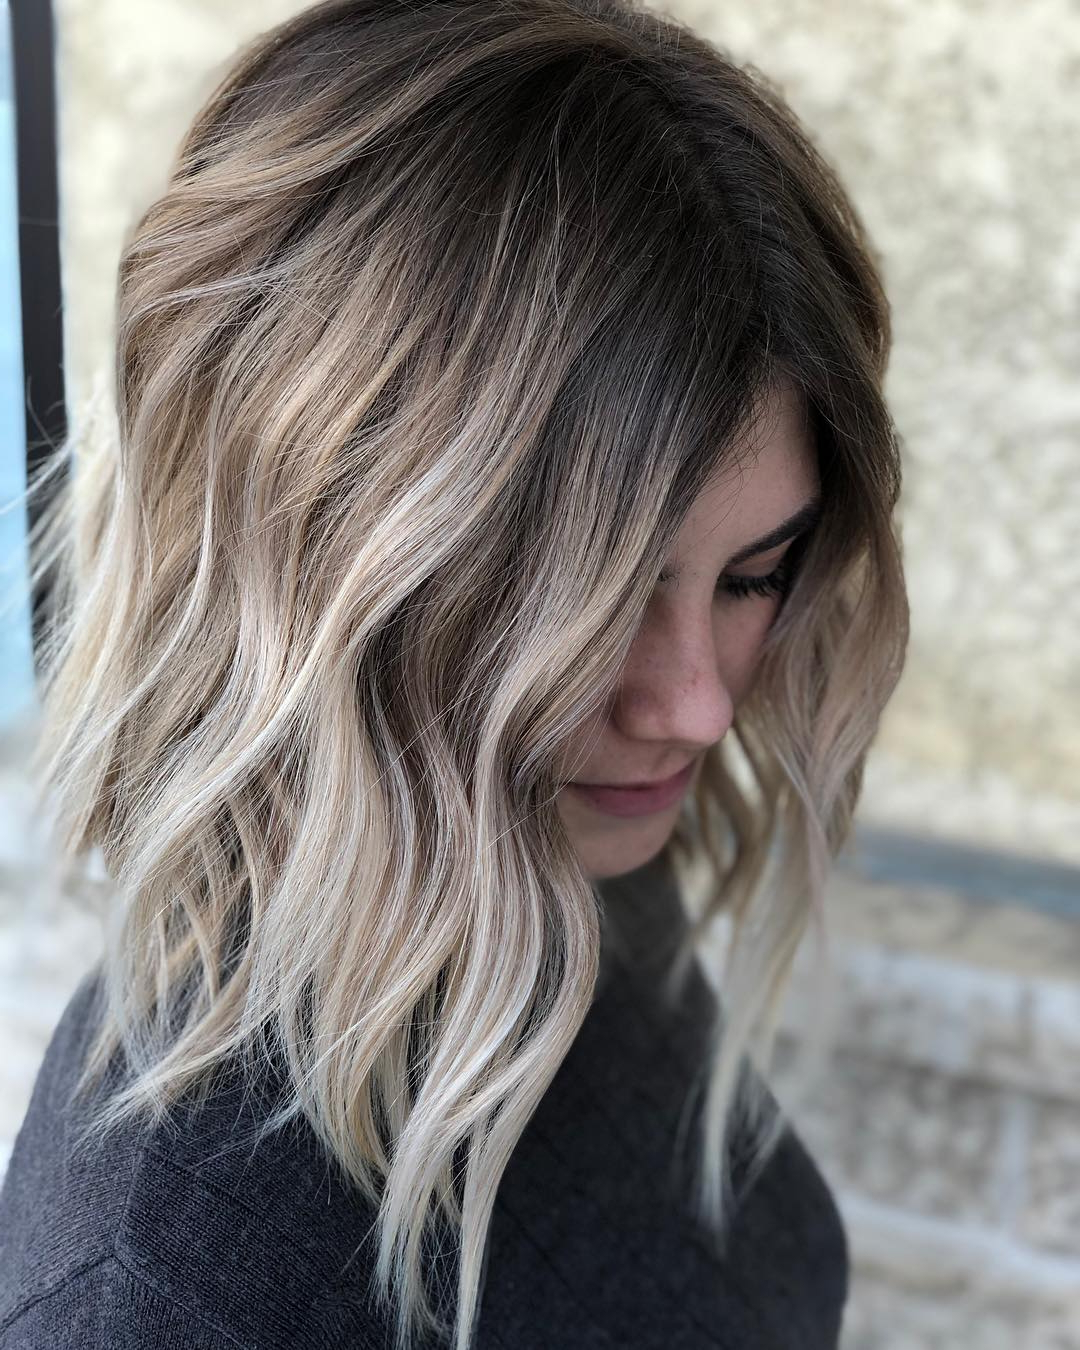 10 Balayage Ombre Hair Styles For Shoulder Length Hair, Women With Latest Layered Ombre For Long Hairstyles (View 2 of 20)